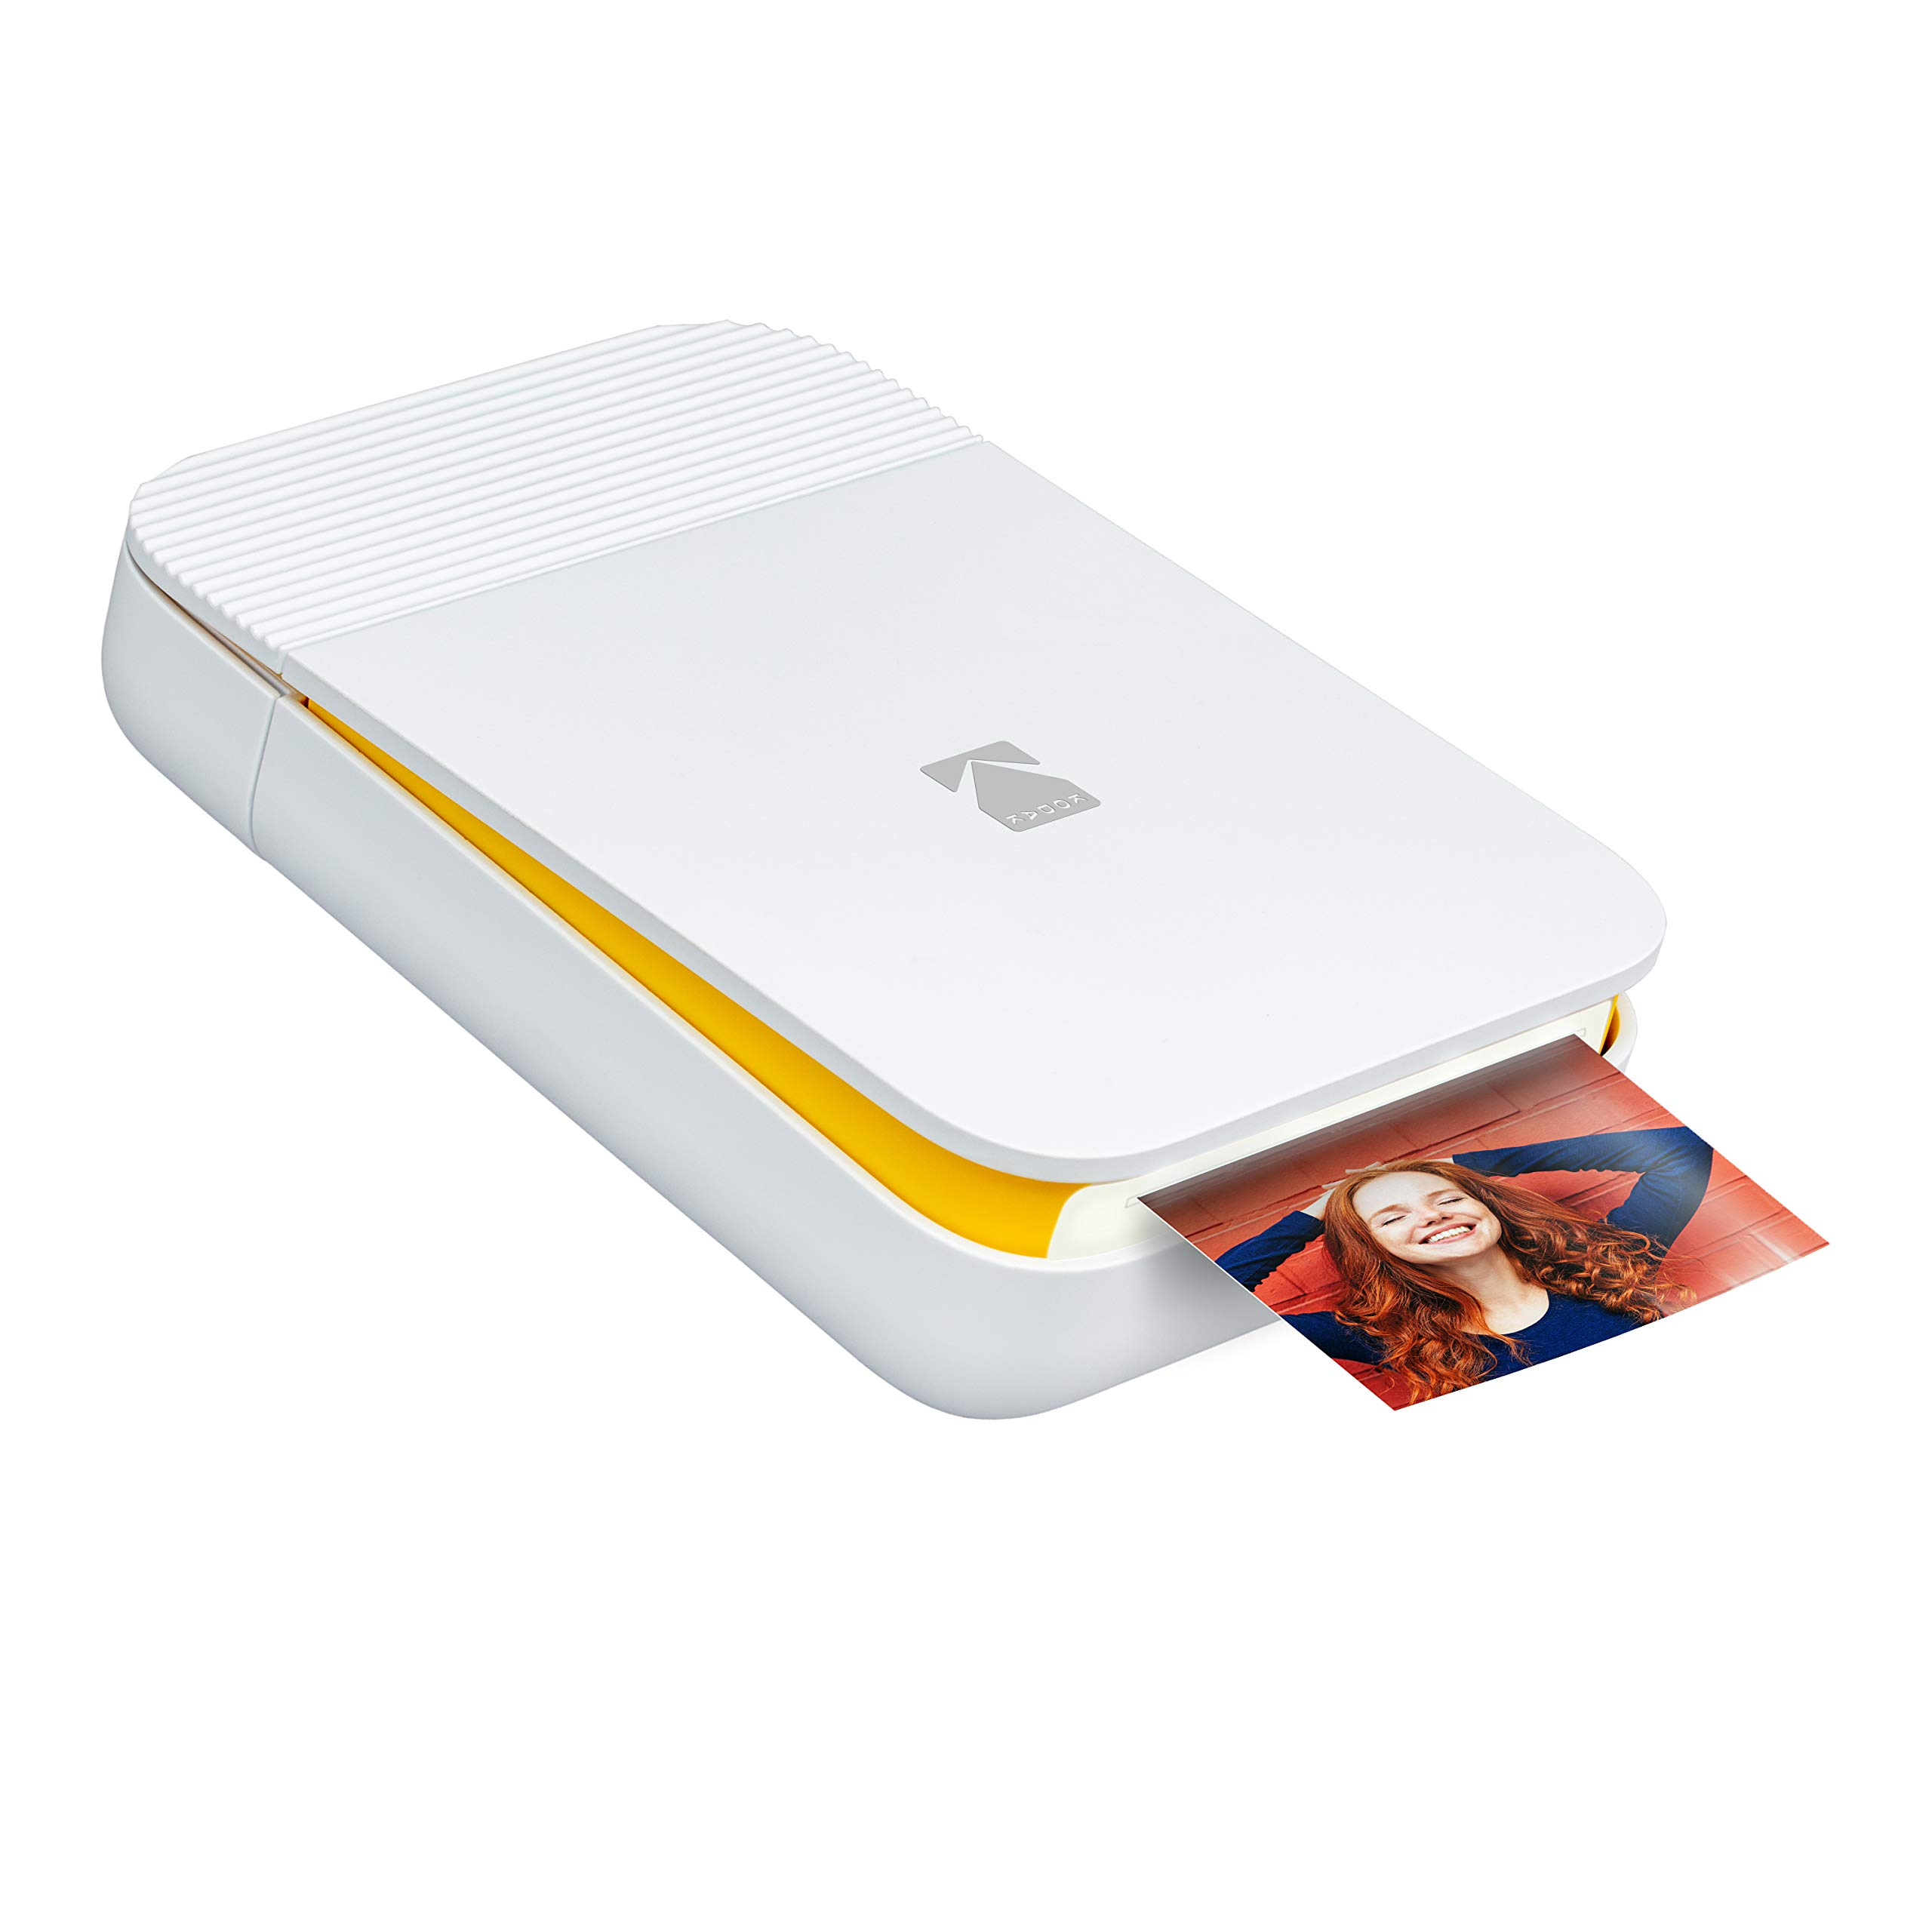 KODAK Smile Instant Digital Printer - Pop-Open Bluetooth Mini Printer for iPhone & Android - Edit, Print & Share 2x3 Zink Photos w/Free Smile App - White/Yellow by KODAK